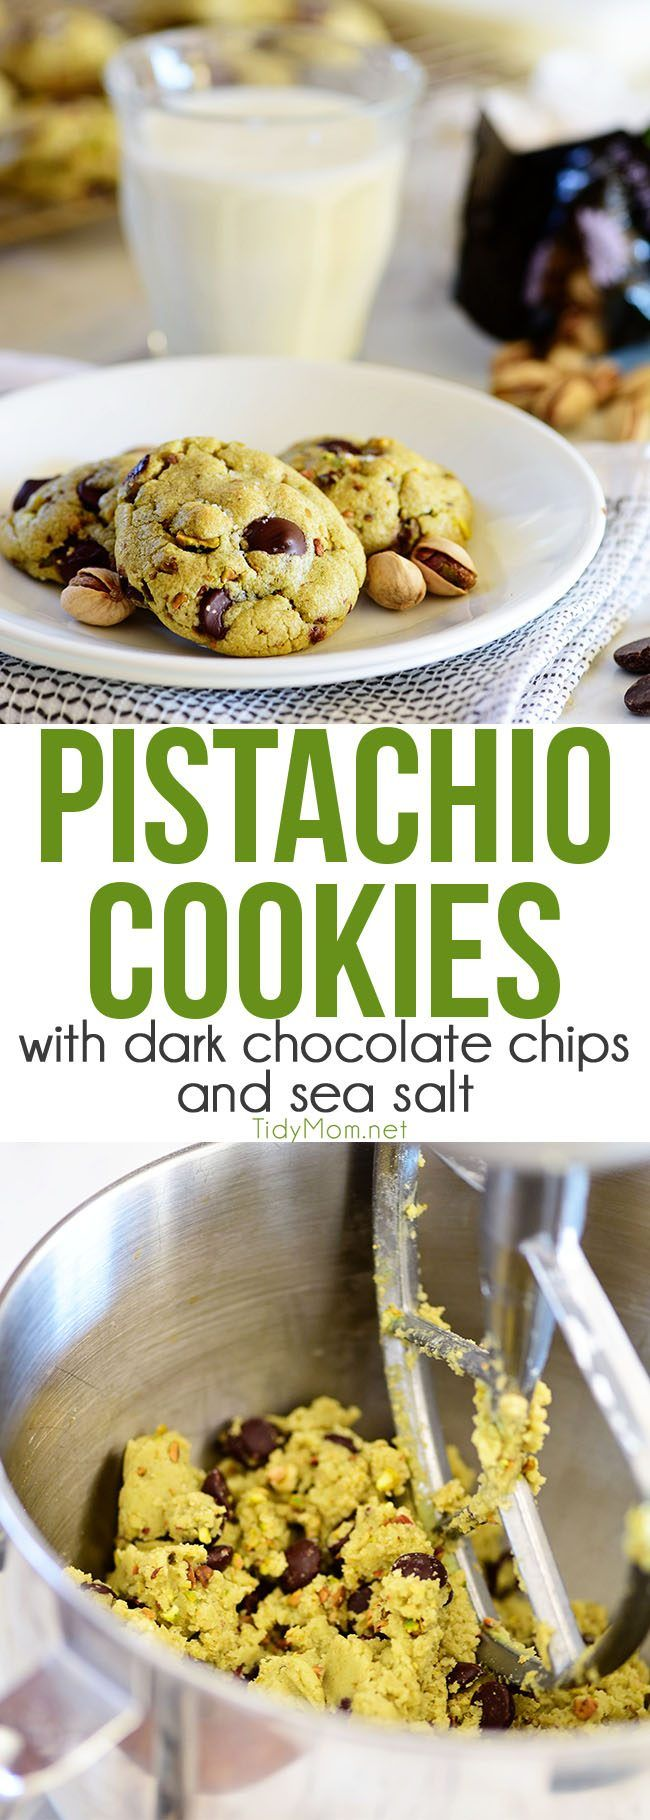 ... dark chocolate chips that pair perfectly with pistachios. I bet you